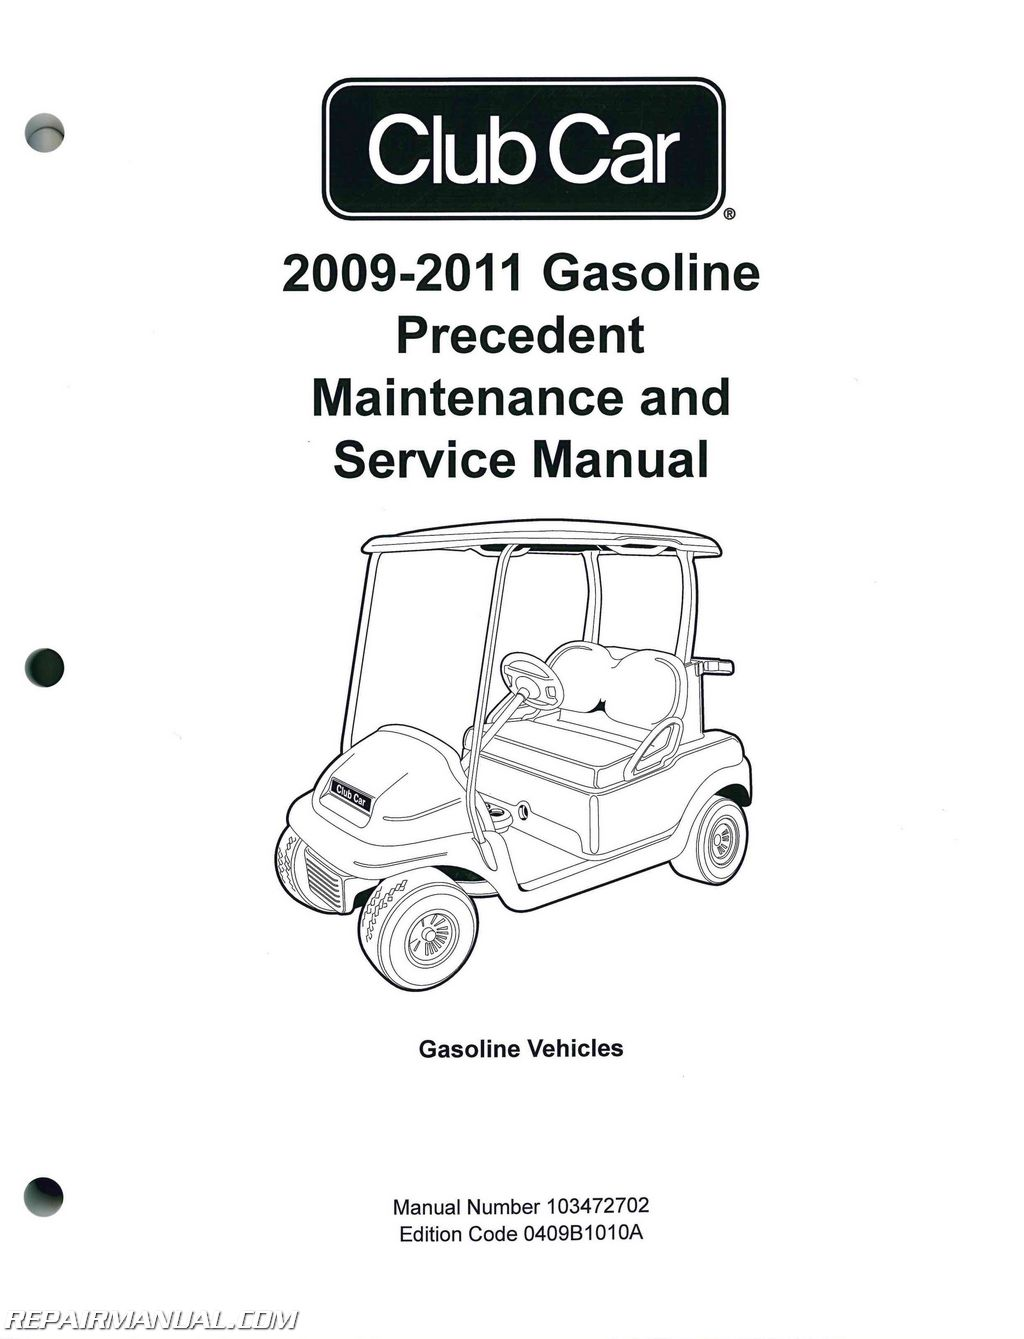 hight resolution of 2009 2011 club car gasoline precedent maintenance and service manual jpg